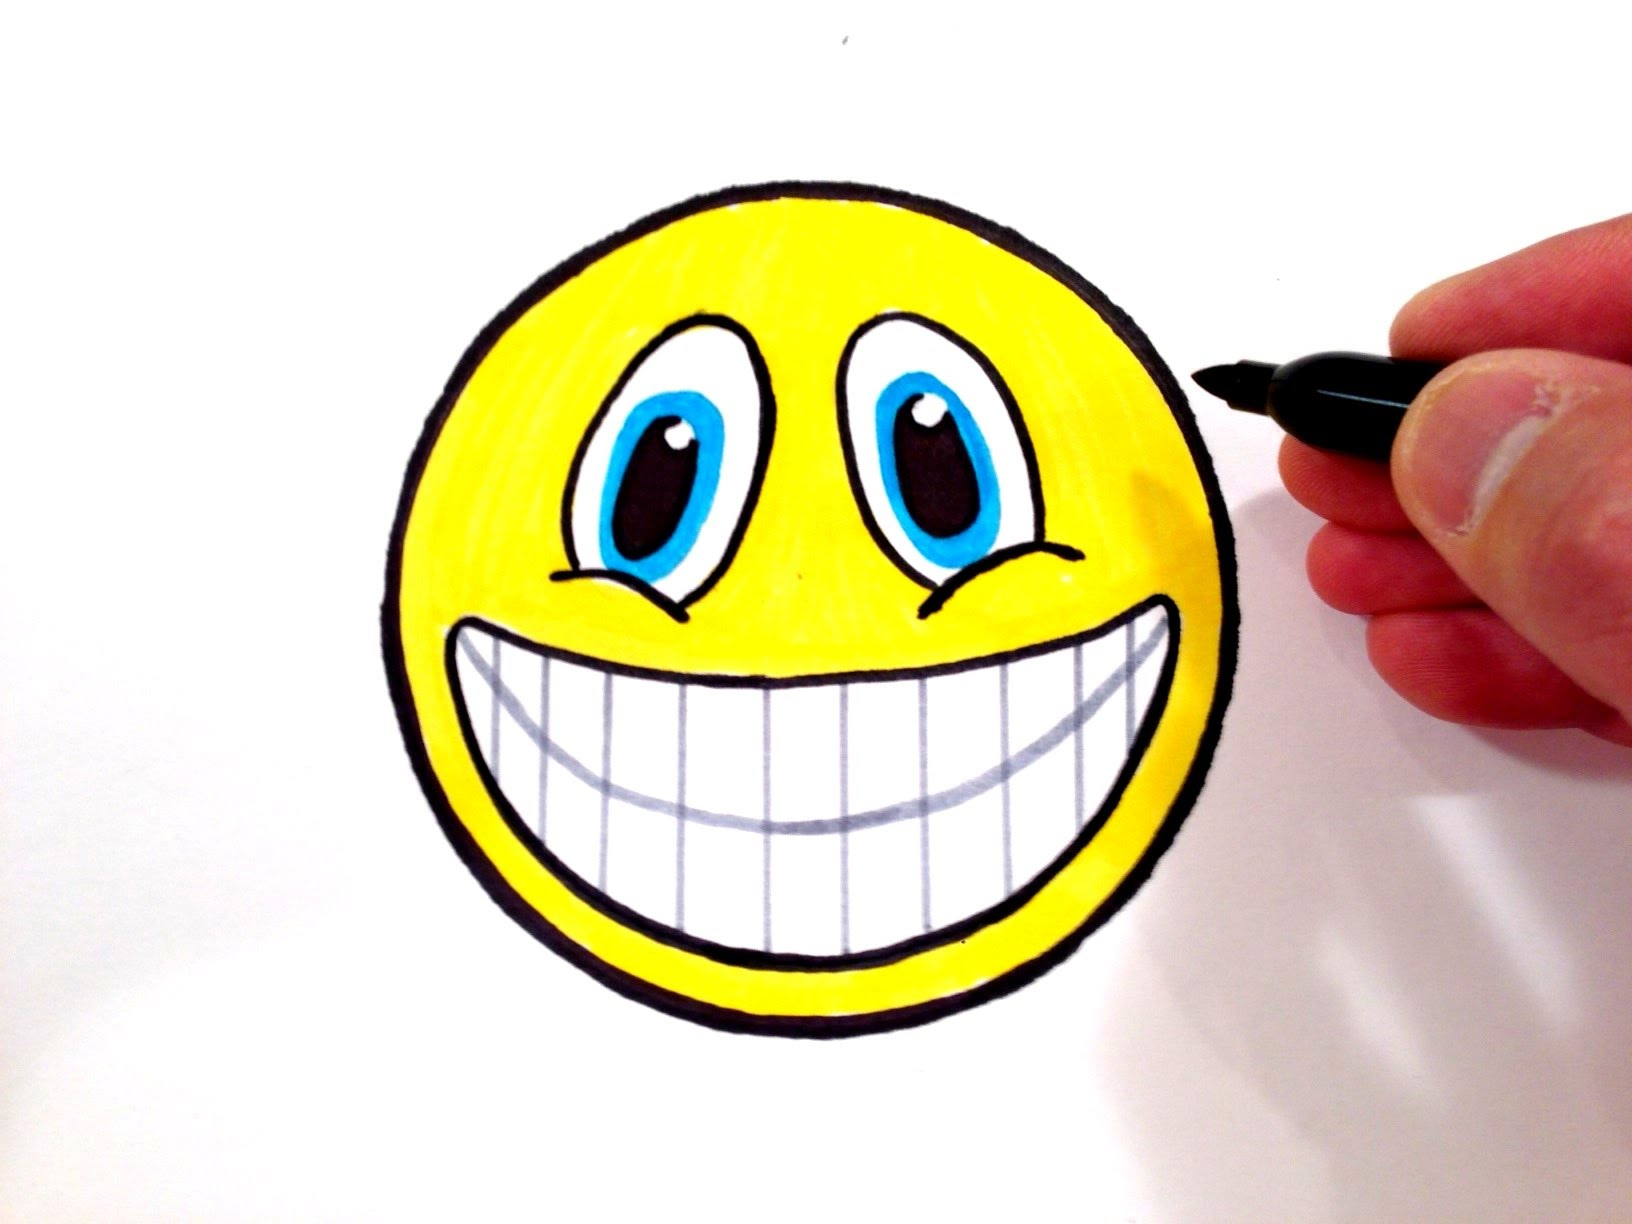 1632x1224 How To Draw A Smiley Face With Teeth